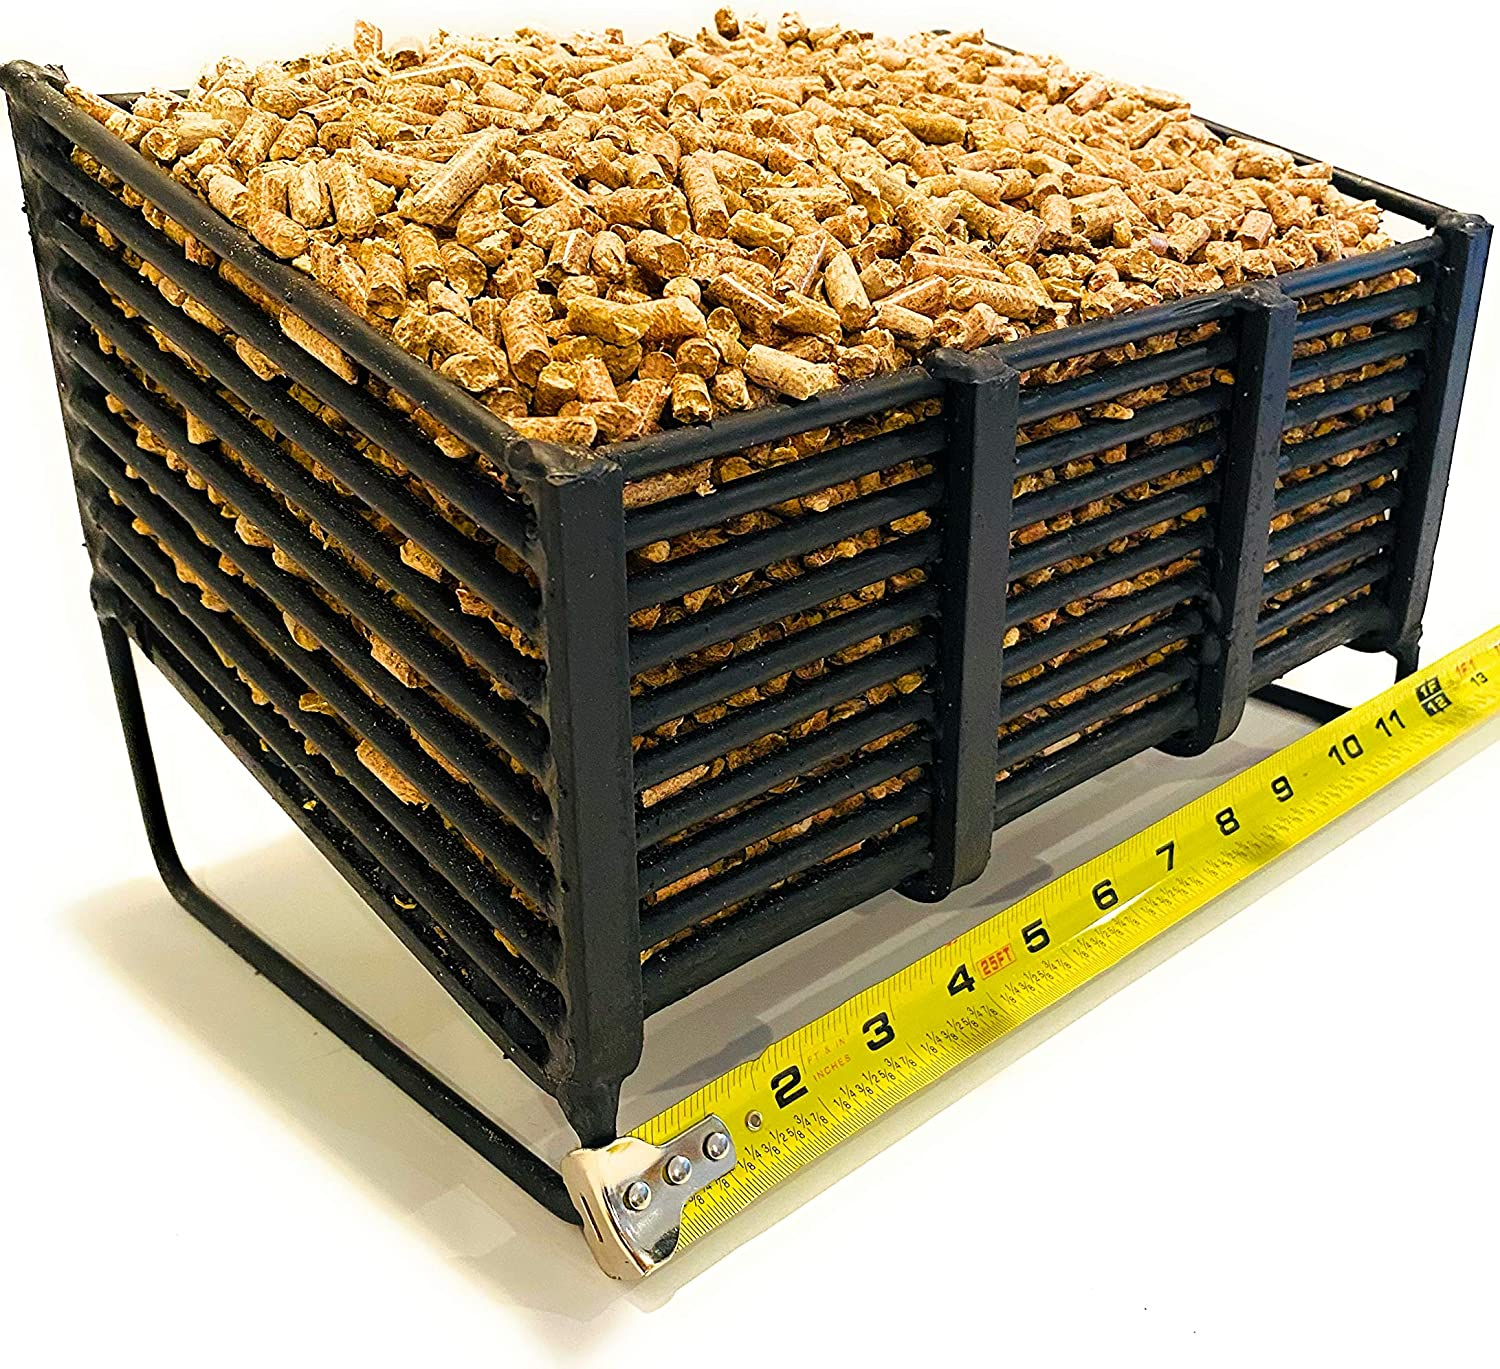 Small Pellet Basket, Heating Source Using Wood Pellets in Your Wood Stove or Fireplace